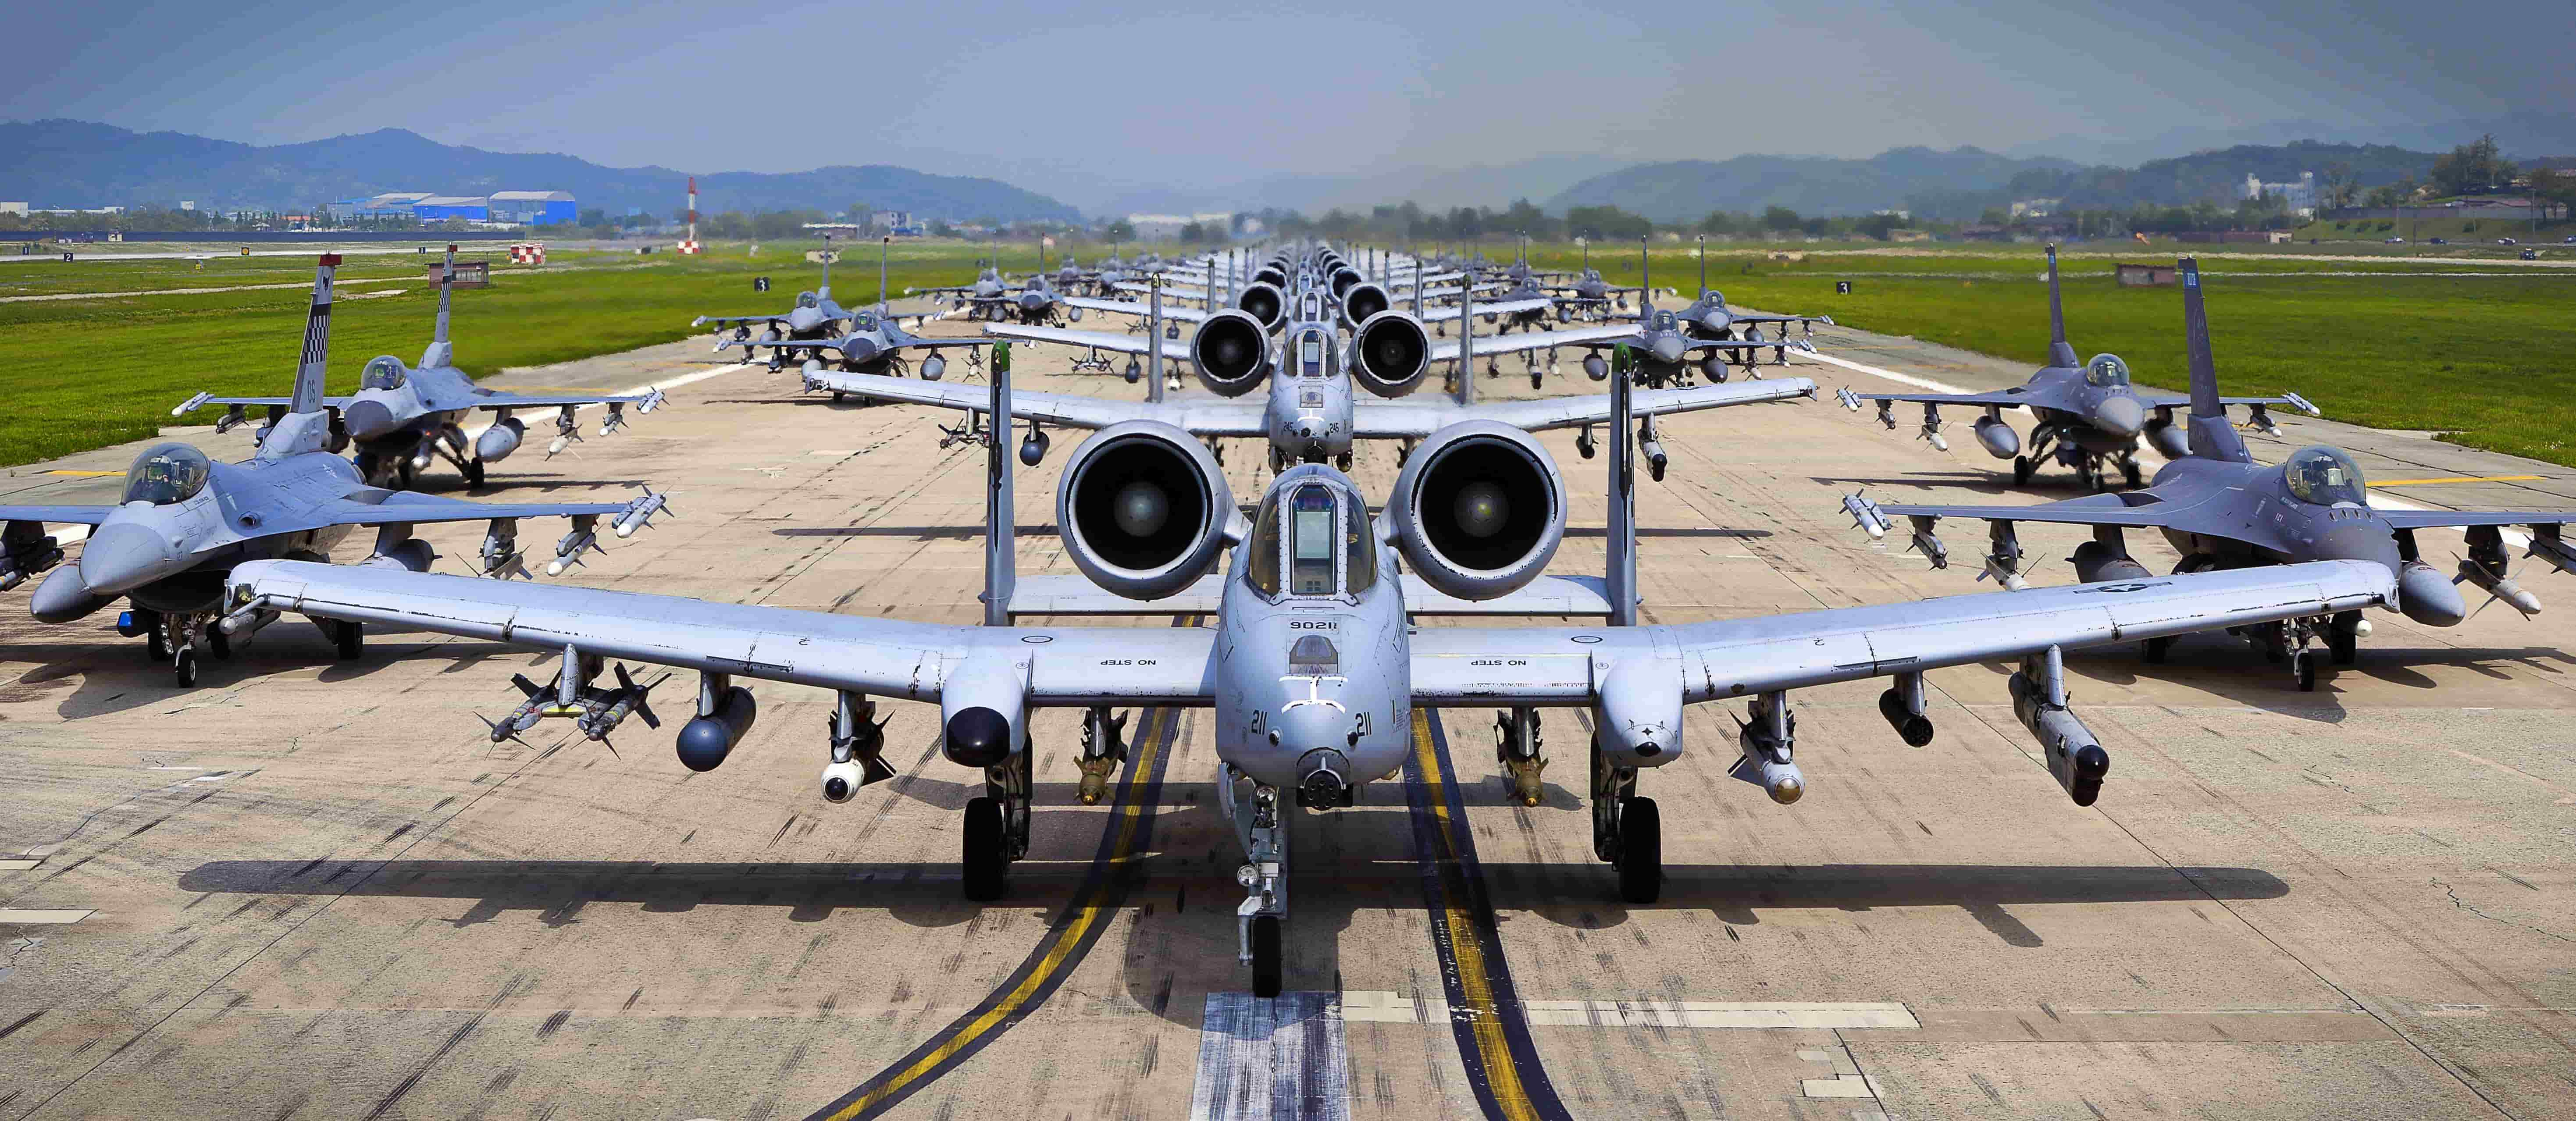 """A-10 Thunderbolt II and F-16 Fighting Falcon fighter aircraft perform an 'Elephant Walk' on the runway this week during Exercise Beverly Herd 16-01 at Osan Air Base, Republic of Korea. The Elephant Walk was a demonstration of U.S. Air Force capabilities and strength and showcases the wing's ability to generate combat airpower in an expedient manner in order to respond to simulated contingency operations. The A-10 Thunderbolt II aircraft are the 25th Fighter Squadron """"Draggins"""" and the F-16 Fighting Falcon aircraft are the 36th Fighter Squadron """"Friends"""" from the 51st Fighter Wing, Osan AB, ROK; the additional F-16 aircraft are the 179th Fighter Squadron """"Bulldogs"""" from the 148th Fighter Wing out of Duluth Air National Guard Base, Minnesota. (U.S. Air Force photo by Tech. Sgt. Travis Edwards/Released)"""